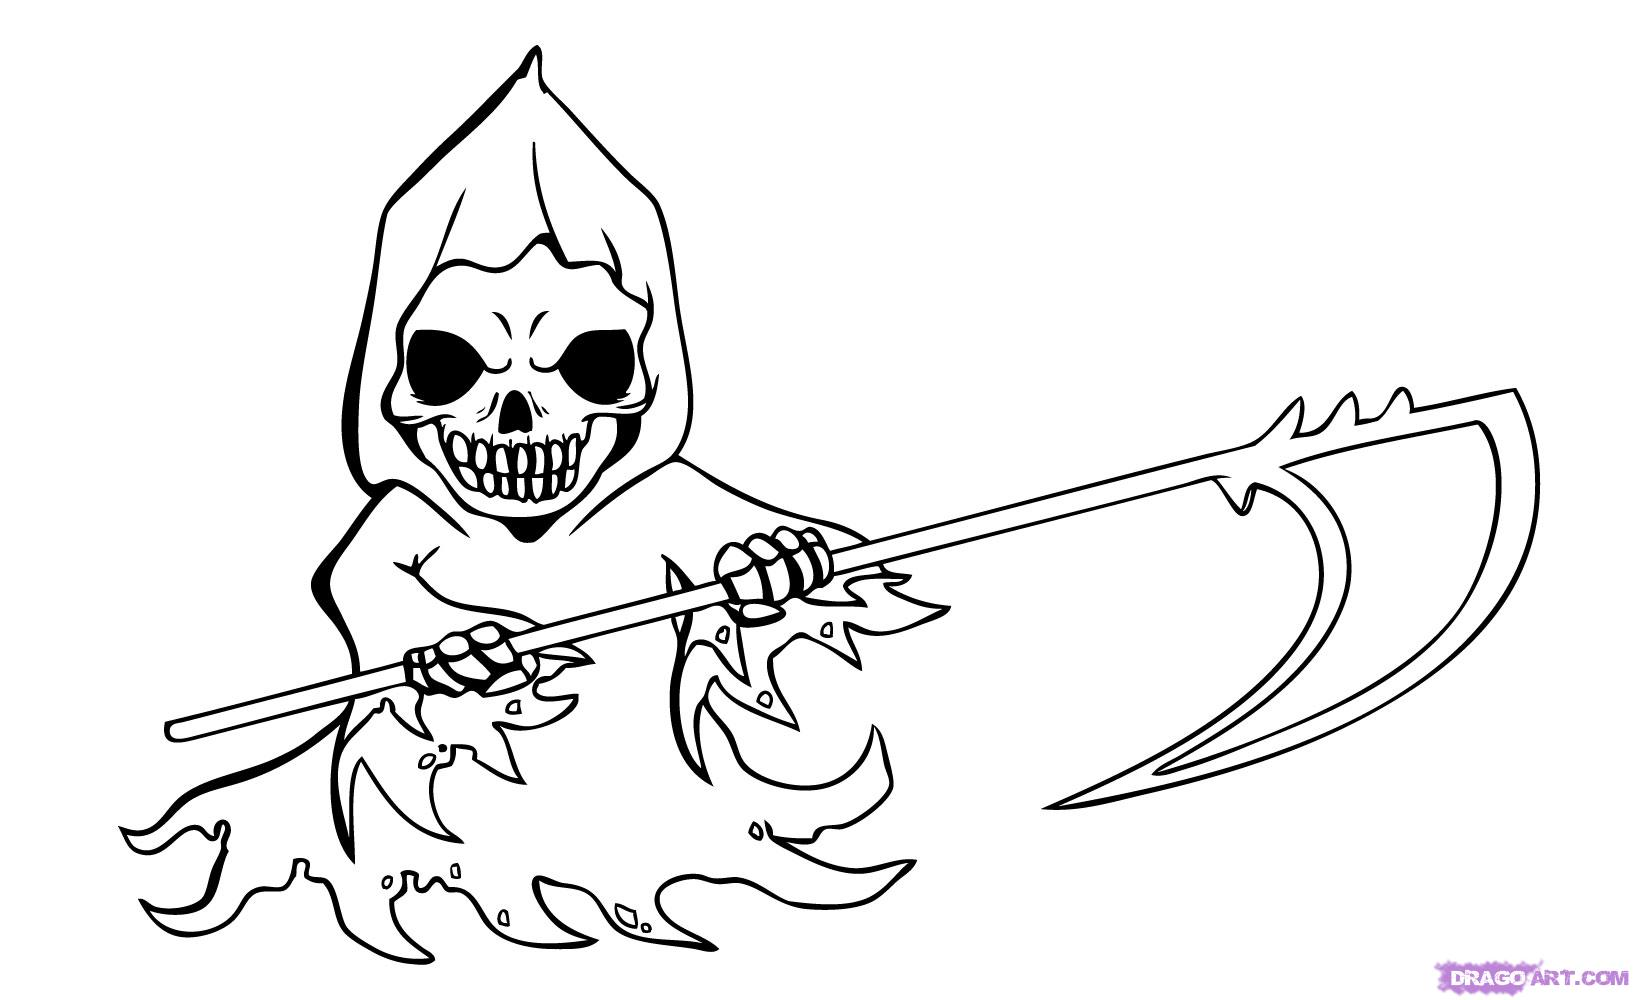 Drawn grim reaper easy  by chibi Step to